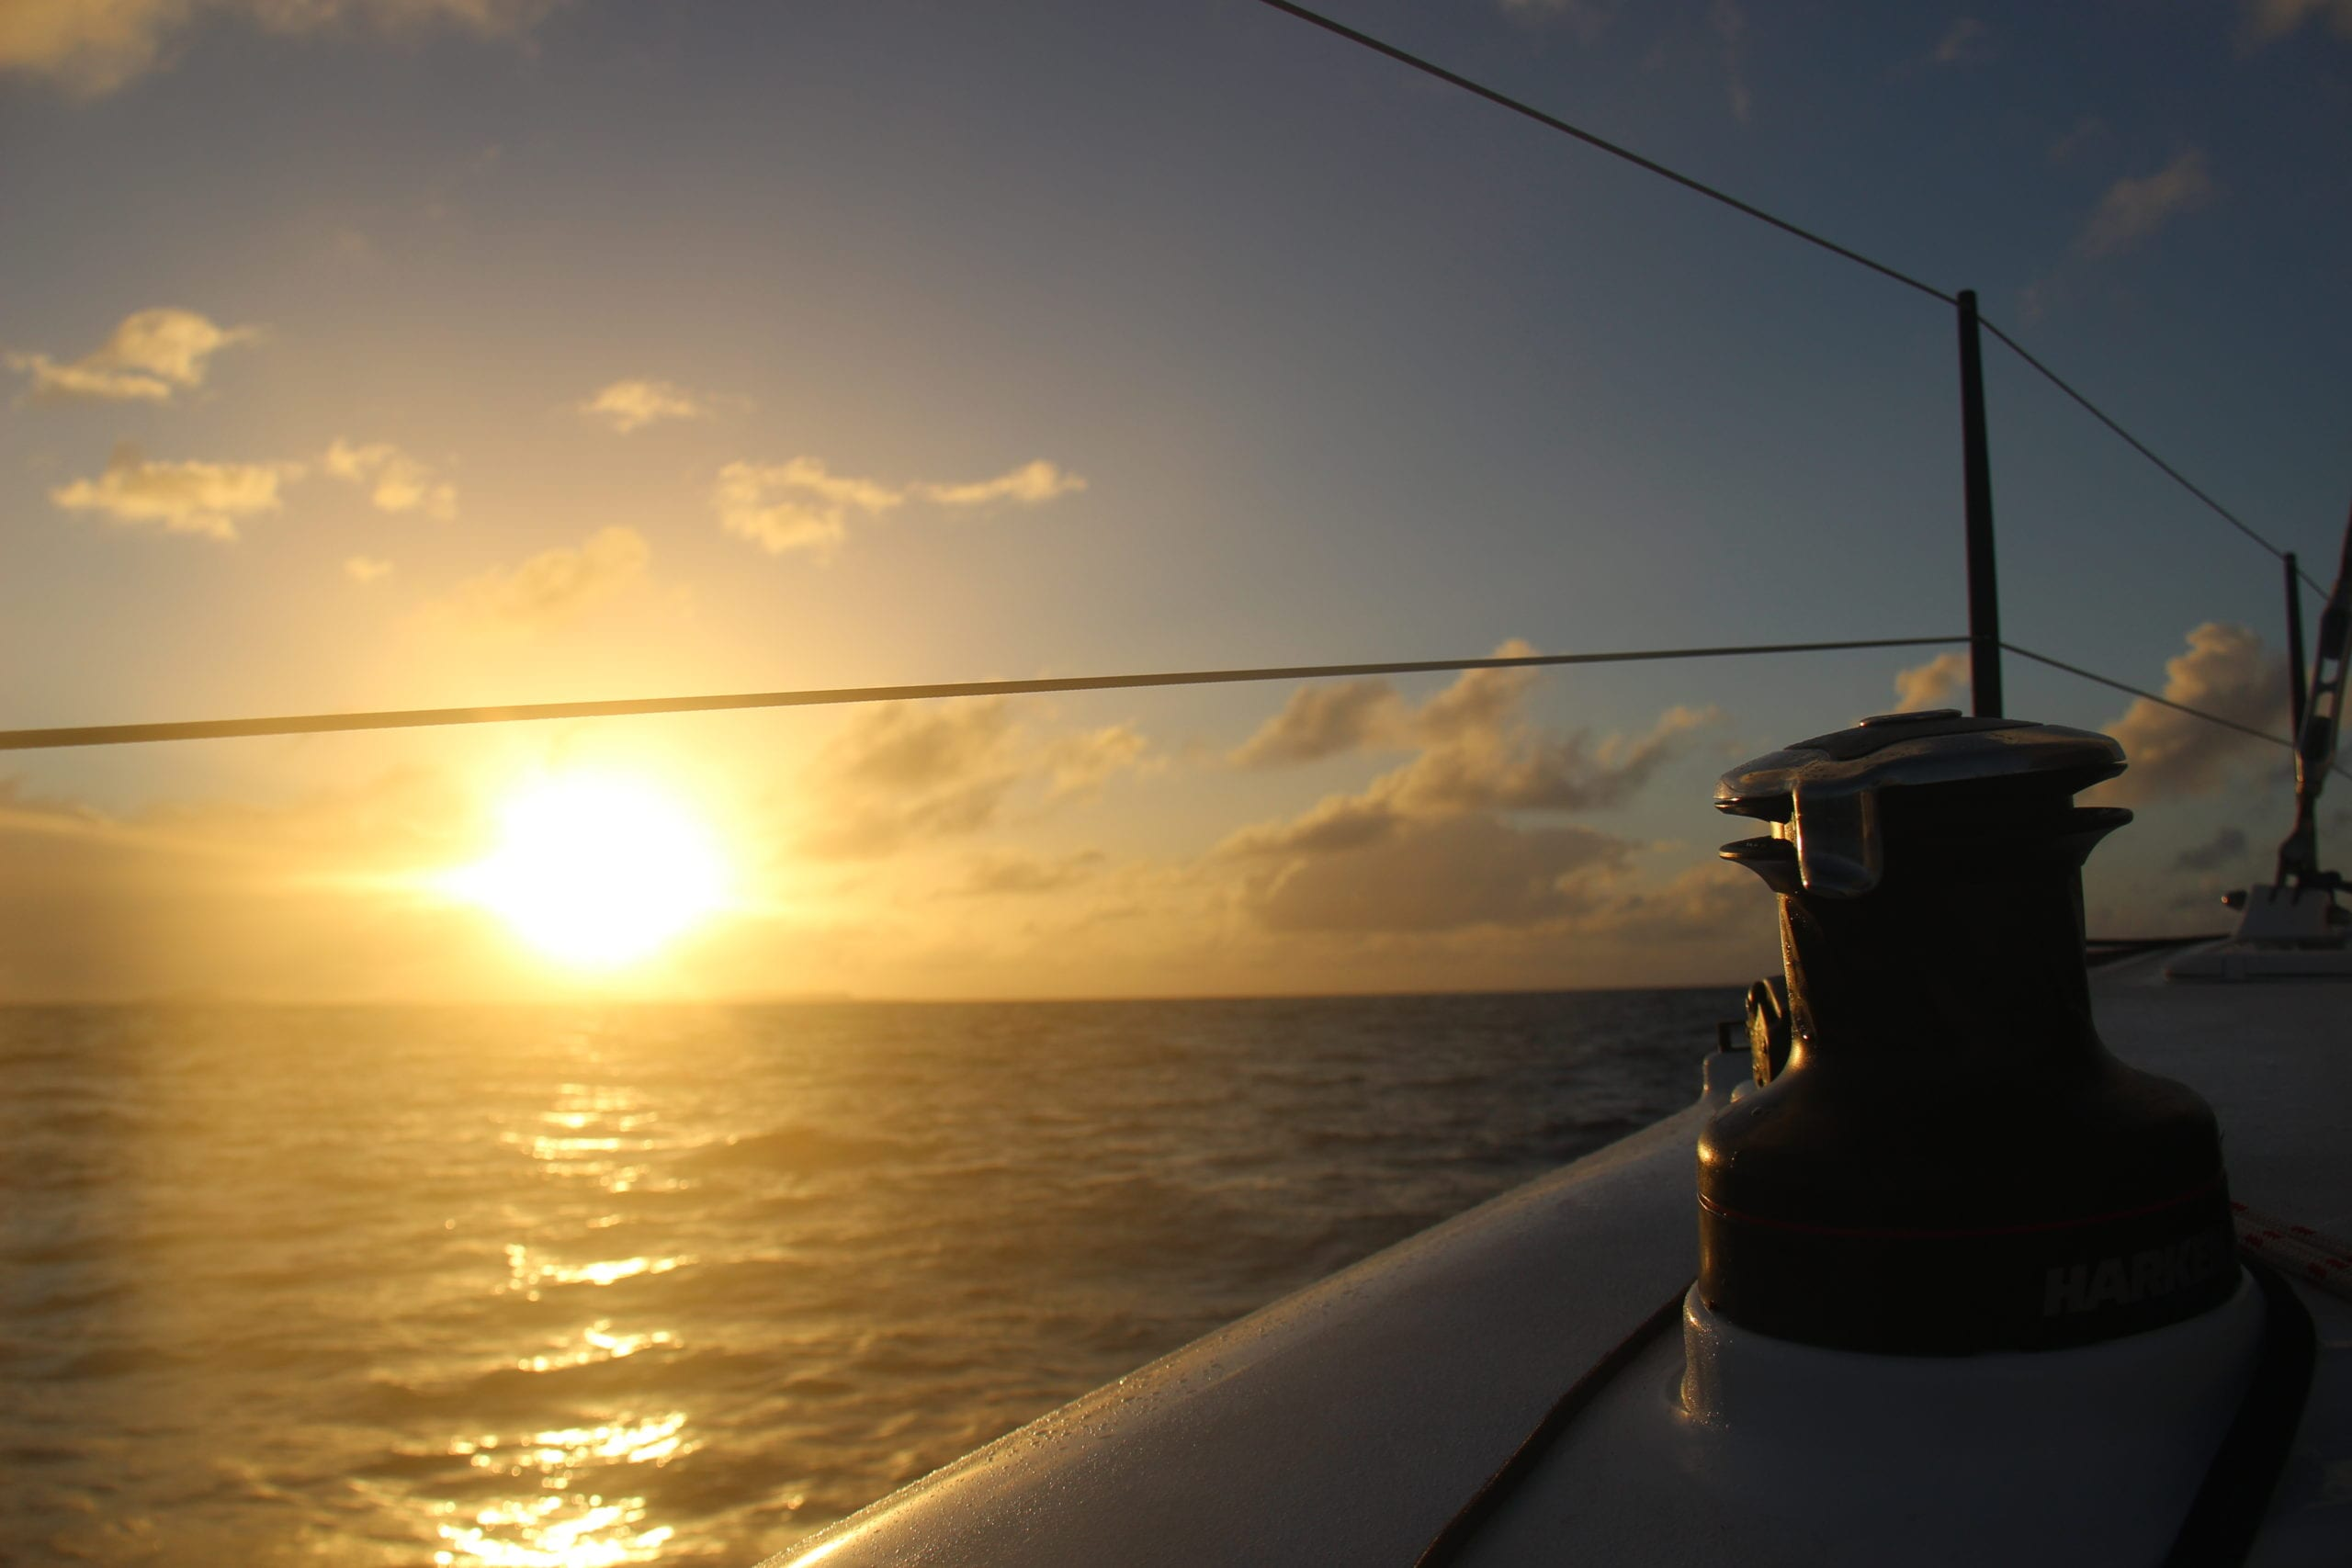 One of the many amazing views seen each day on board the Sail Surf ROAM adventure.